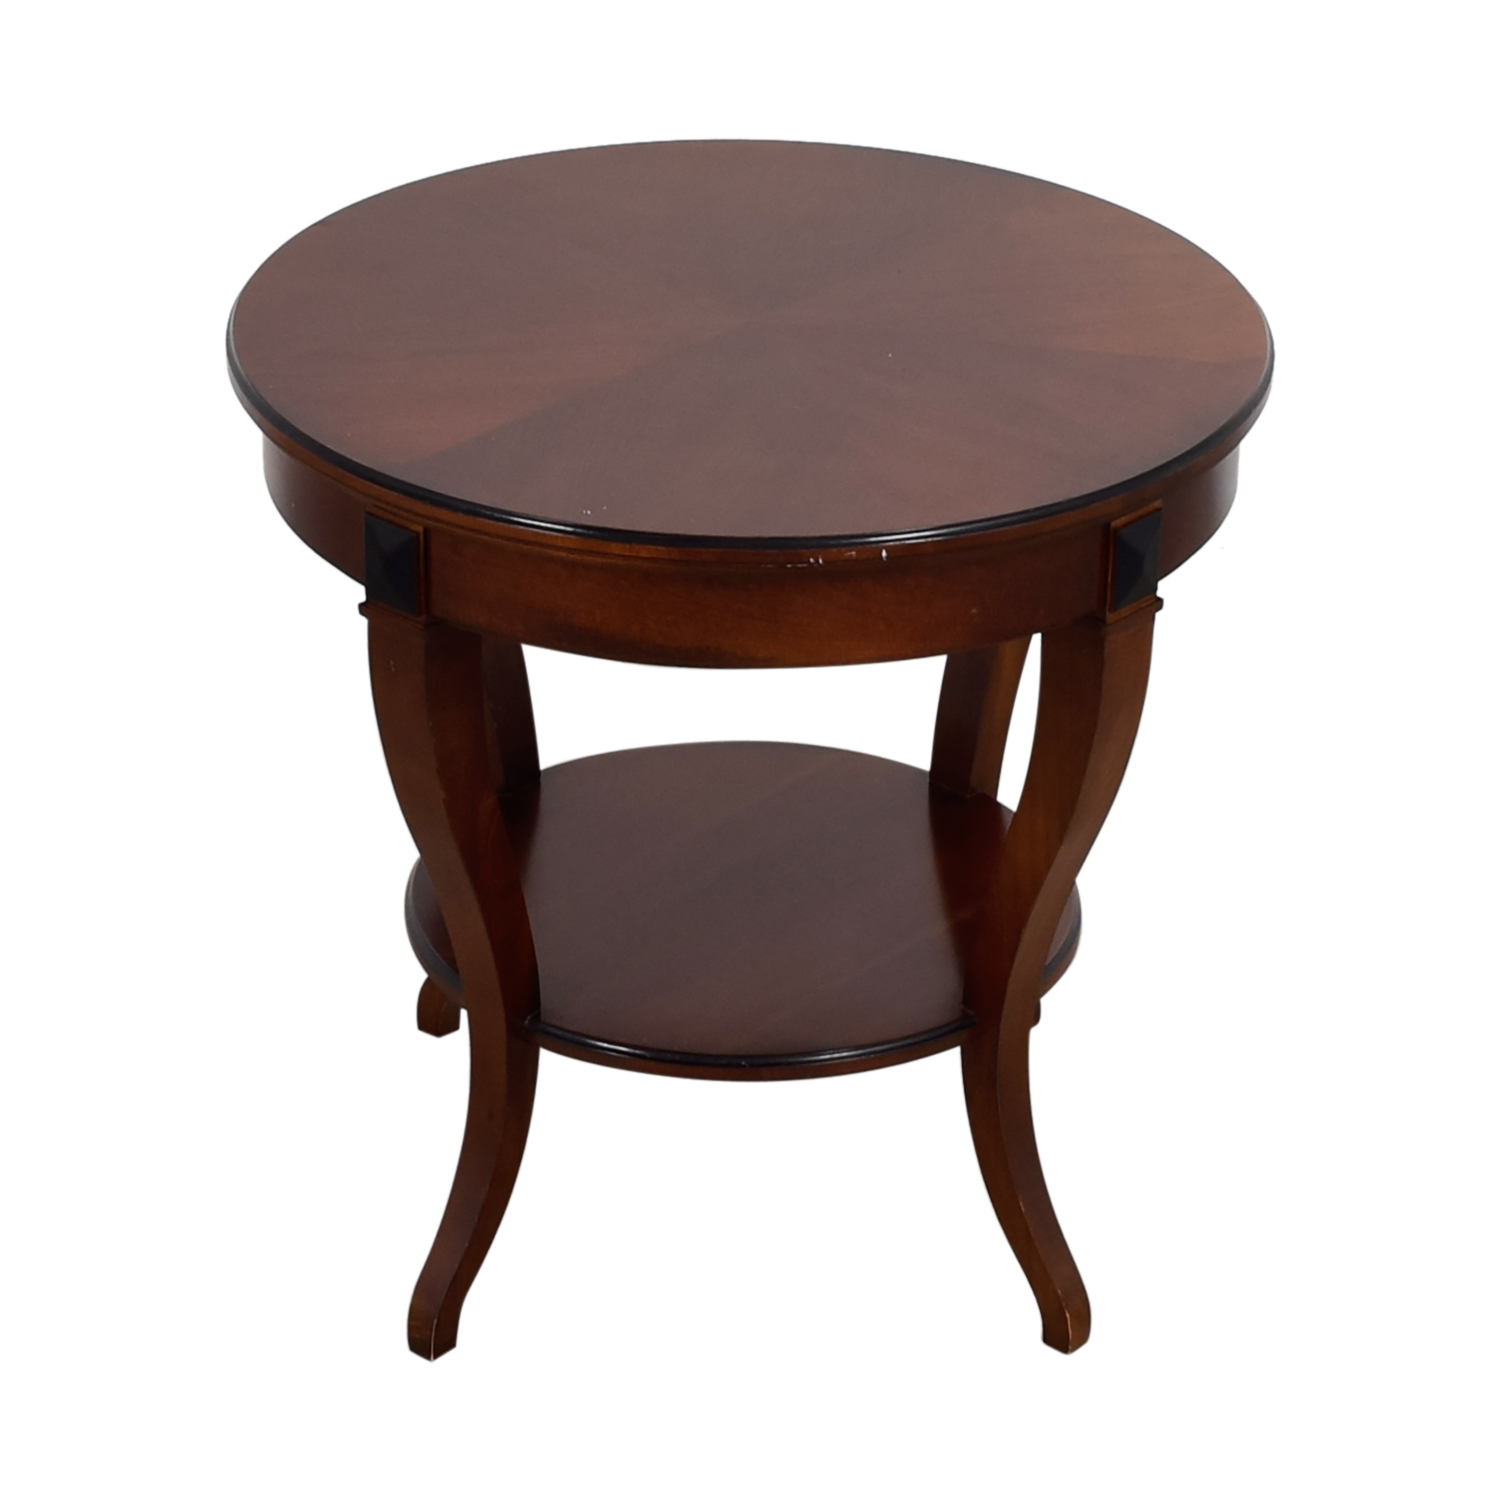 Circular End Tables Round Wood End Table Wood Image Wallpaper